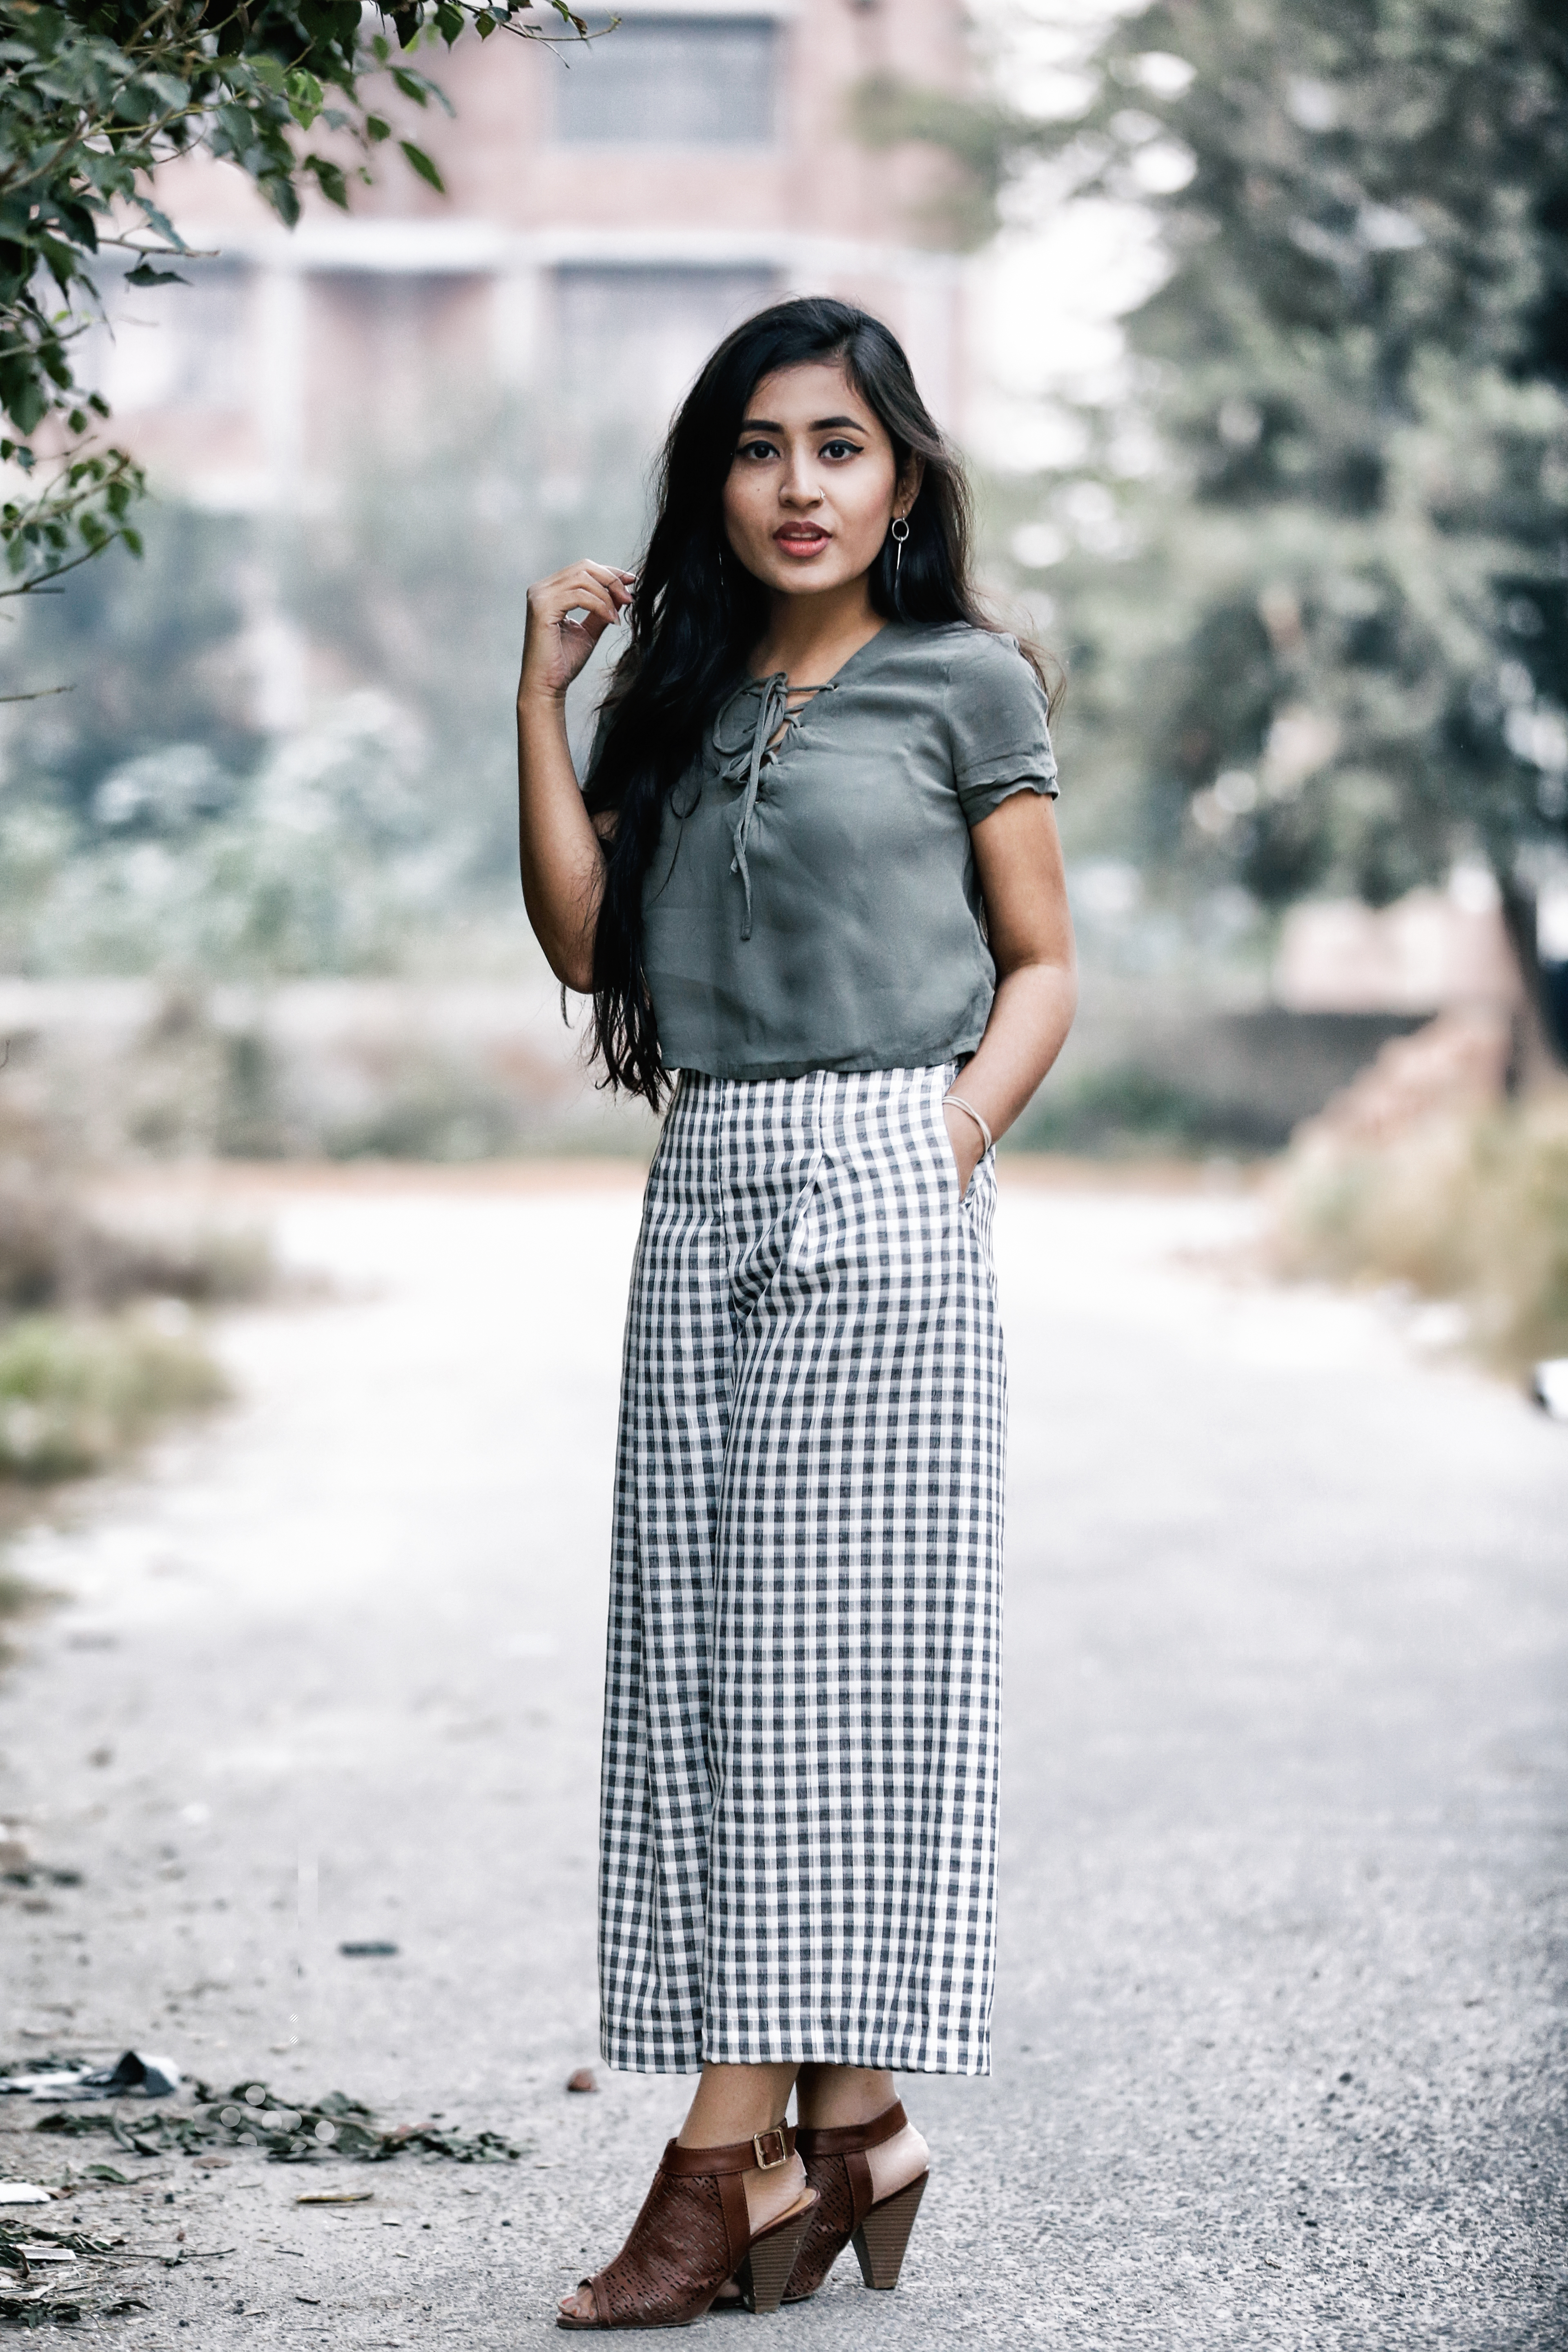 Lace up tops and culottes